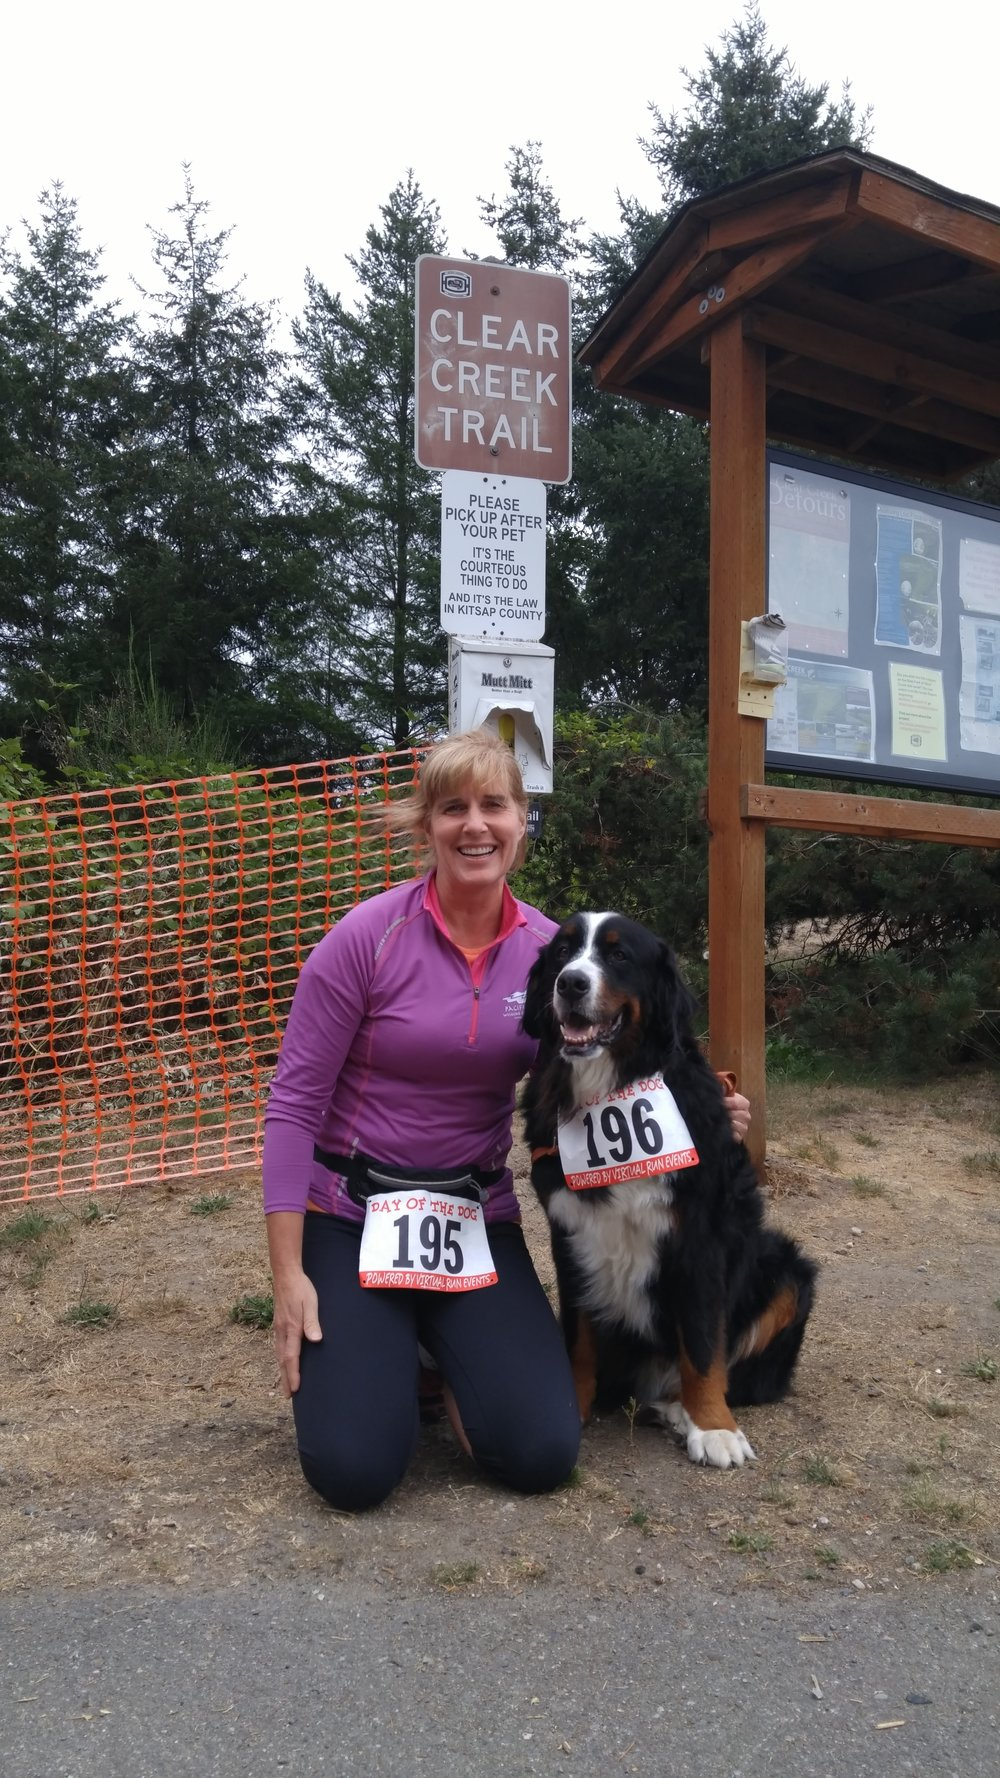 Rhonda and Scout at the Day of the Dog 5k